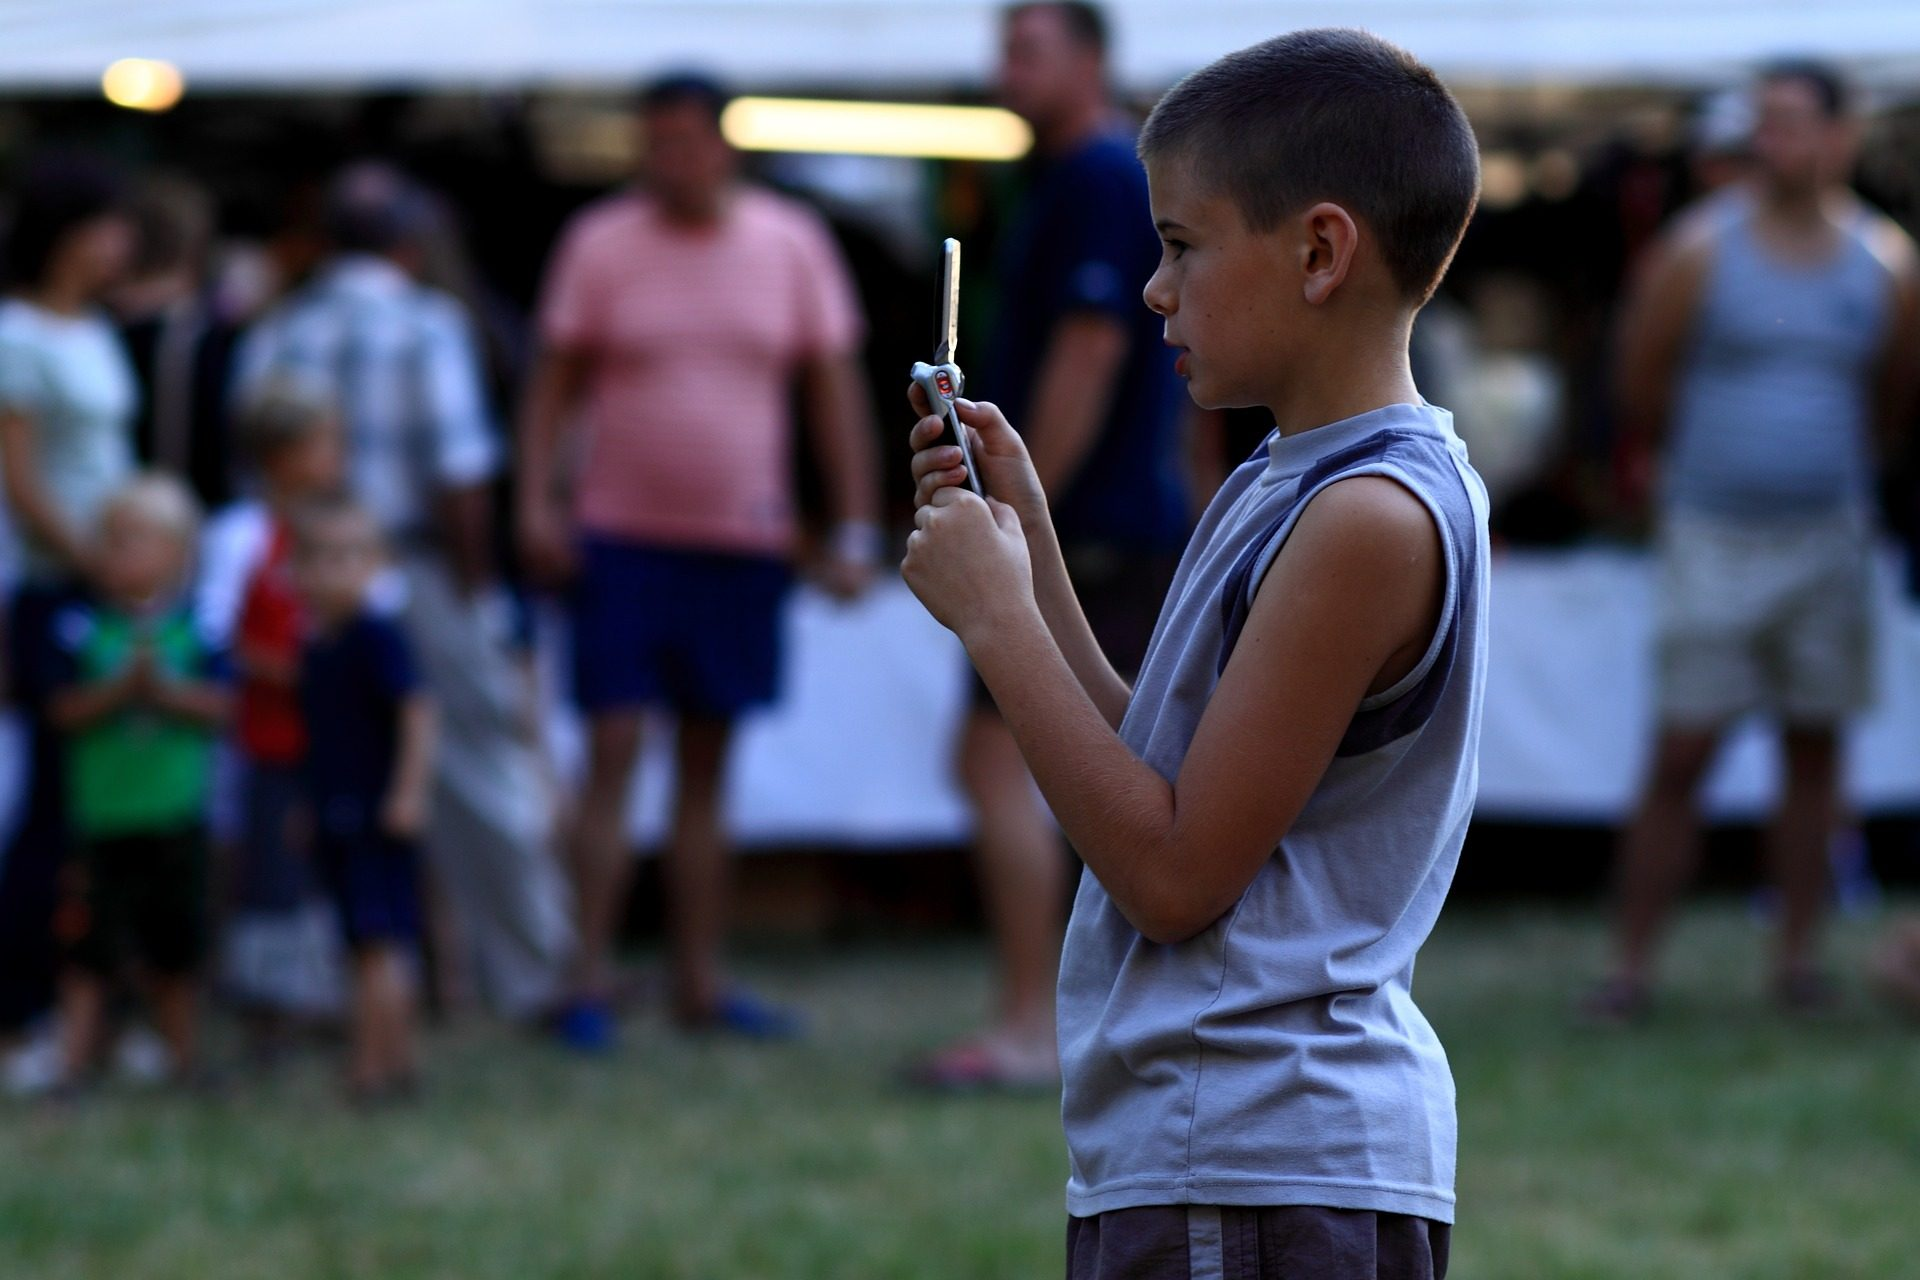 Before you buy your kid a phone, do these things